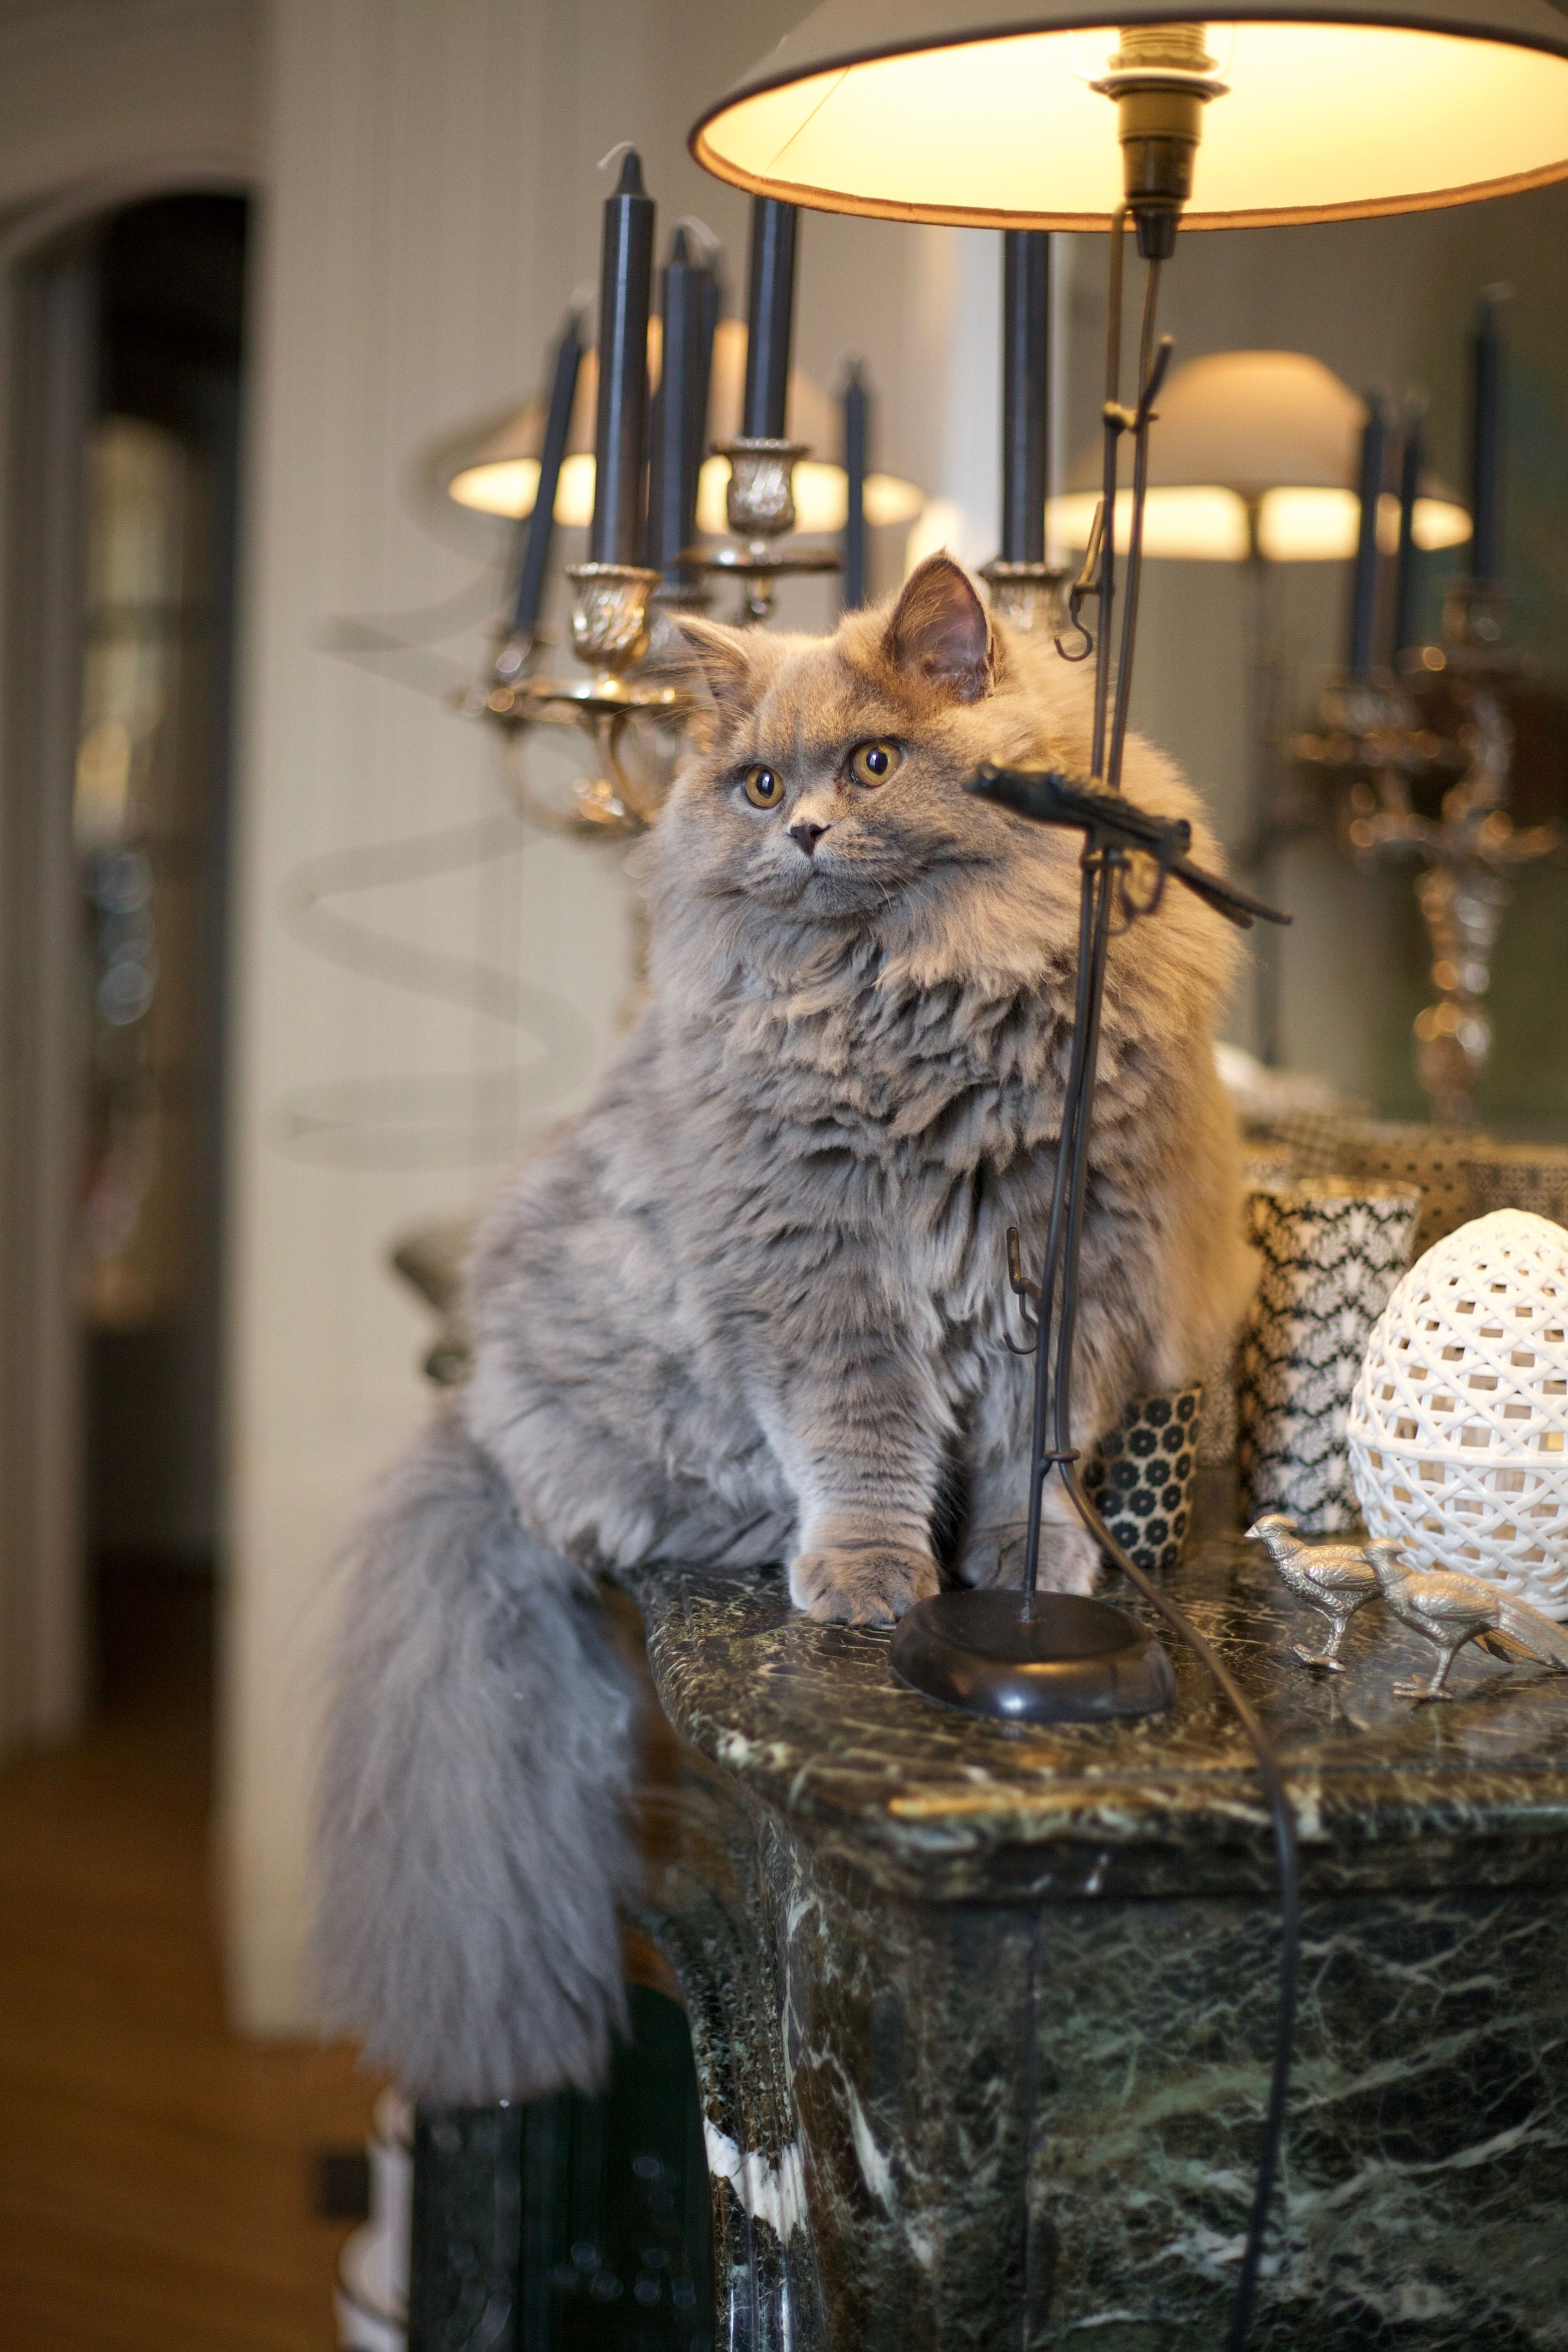 Siberian Kittens For Sale And Siberian Cats For Sale From Siberian Cat Breeder With Over 14 Siberian Cats For Sale Siberian Kittens Siberian Kittens For Sale